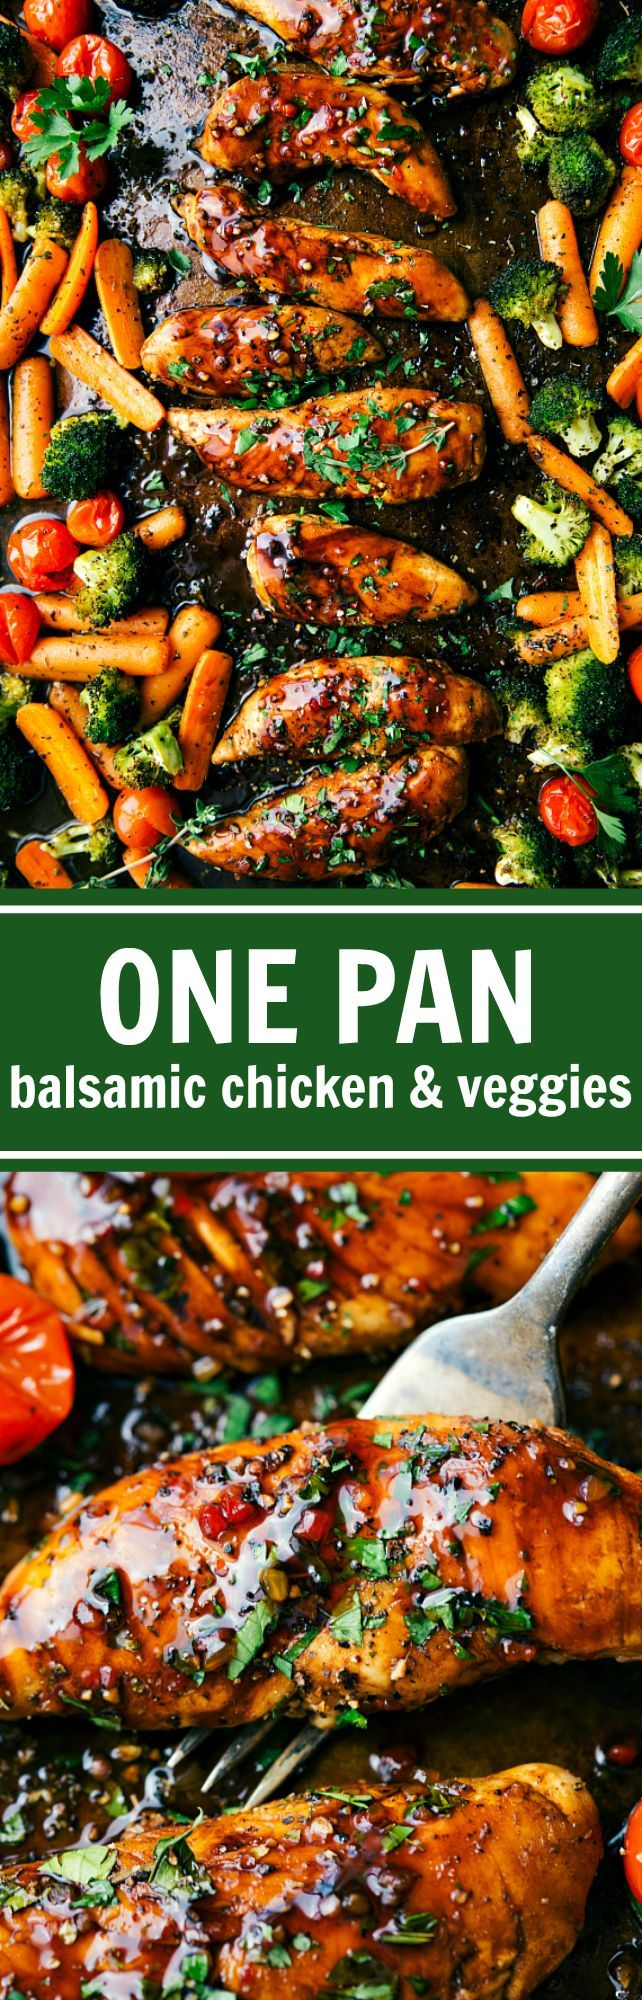 Sweet Balsamic chicken and veggies made in one pan. Ten minute prep and twenty minute cooking time -- this meal is efficient, healthy, and simple to make! via http://chelseasmessyapron.com